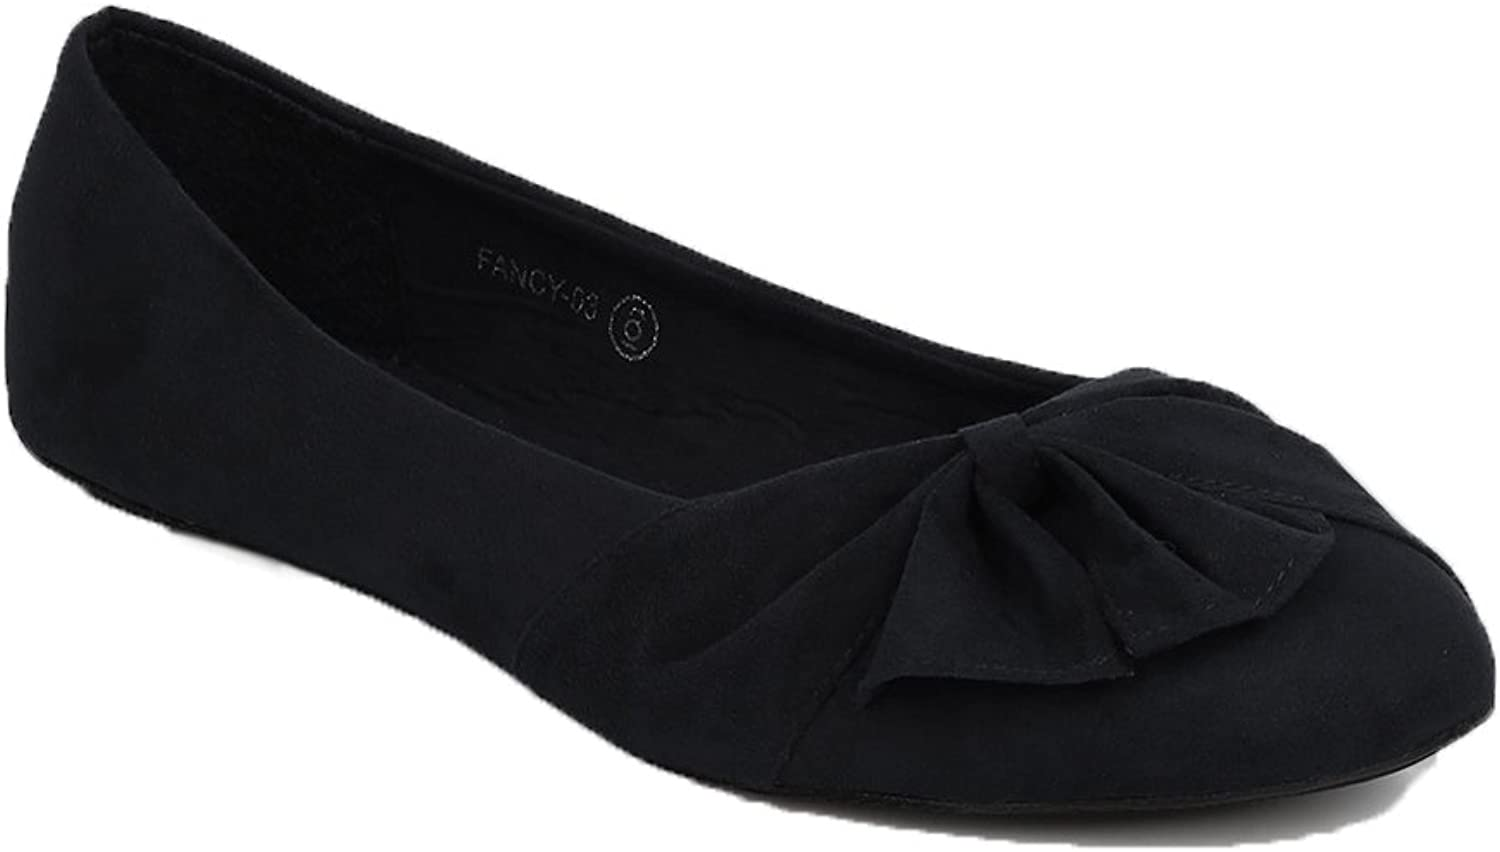 WestCoast Women's Knotted Front Round Toe Faux Suede Ballet Flat shoes